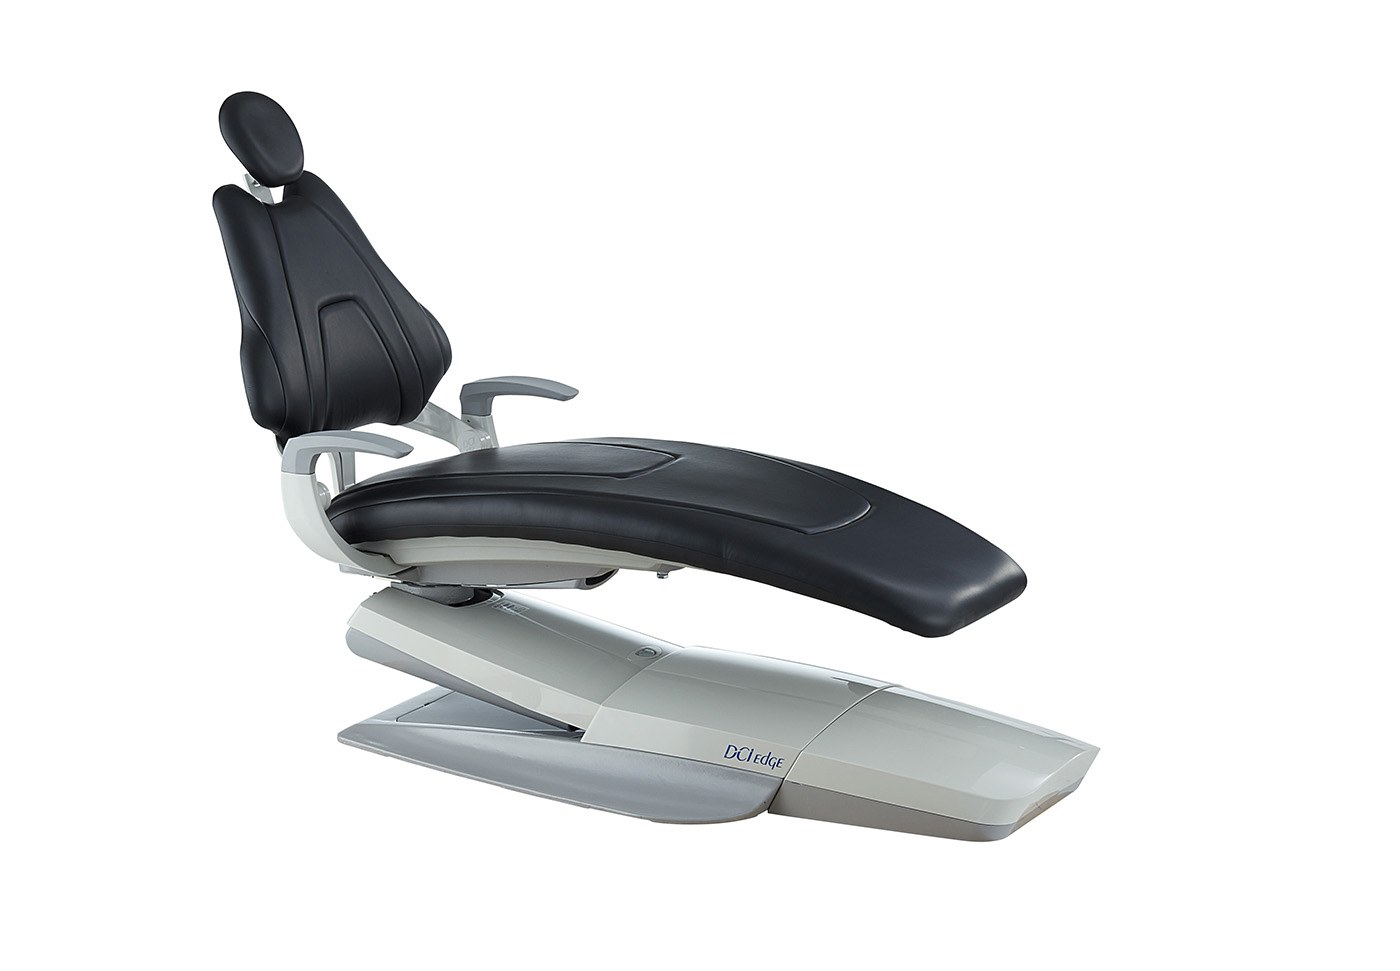 portable dental chair philippines qoo10 ergonomic the best in world mr right